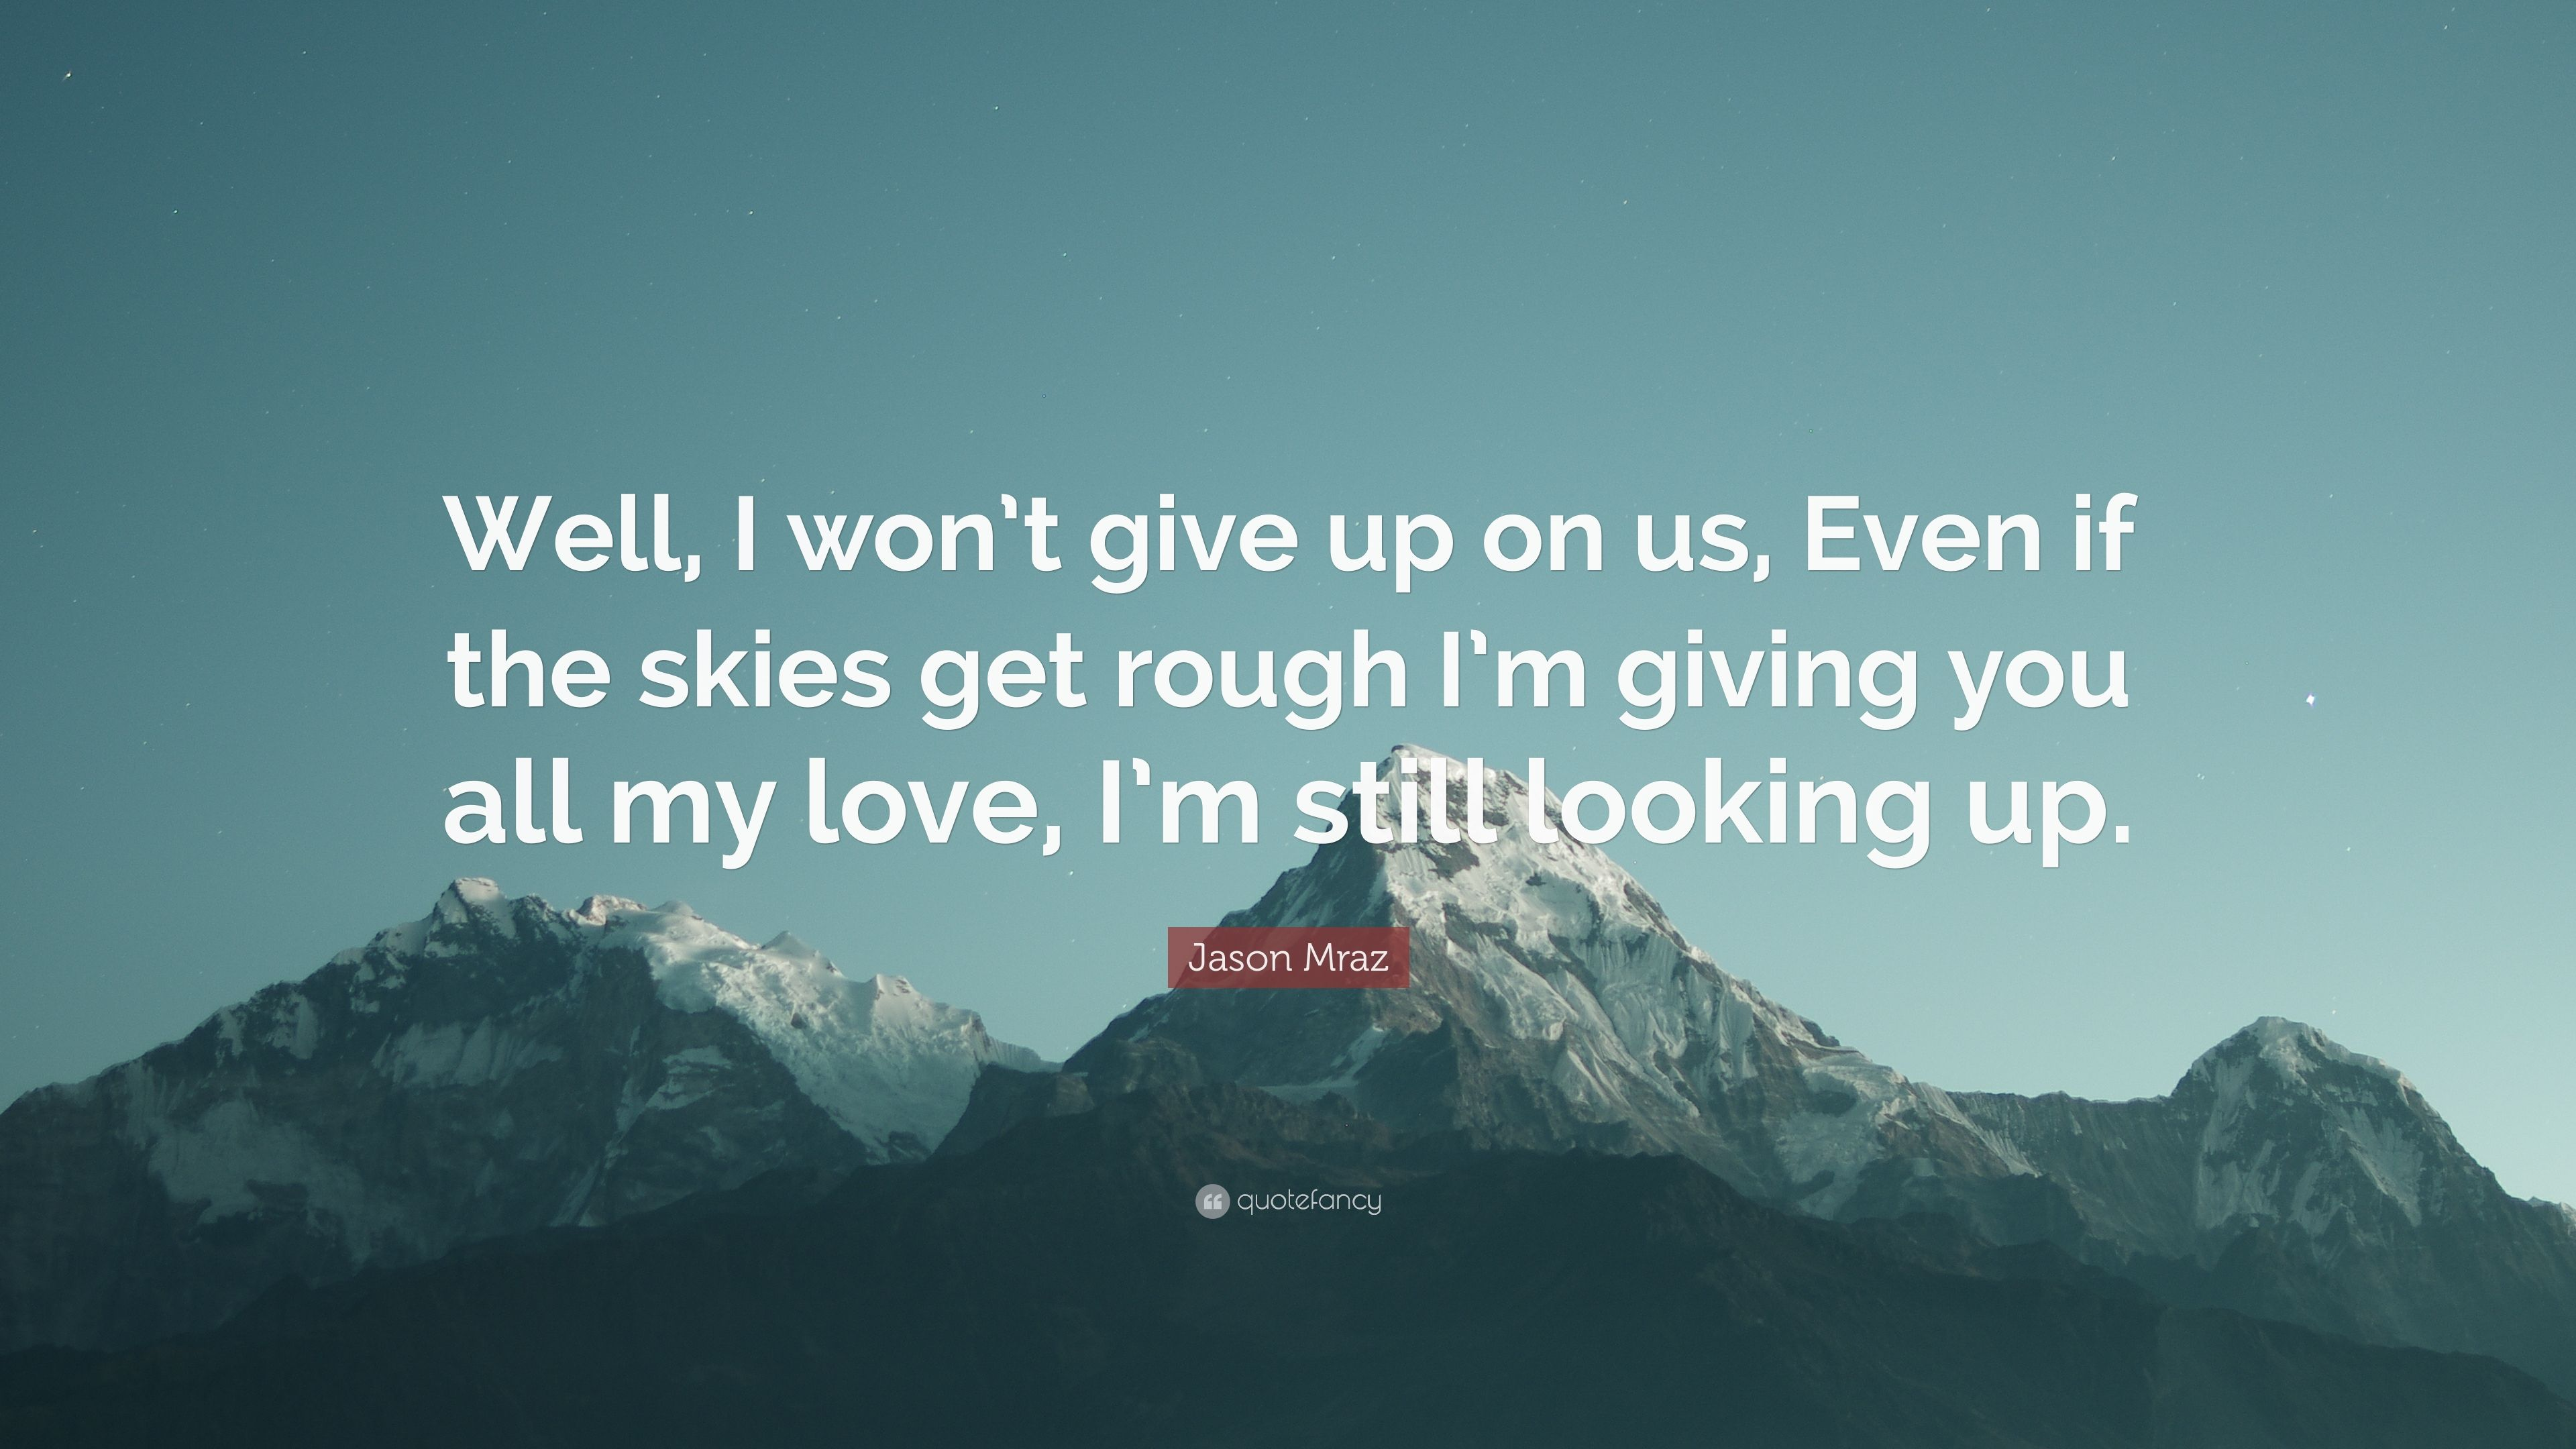 Jason Mraz Quote Well I Won T Give Up On Us Even If The Skies Get Rough I M Giving You All My Love I M Still Looking Up 12 Wallpapers Quotefancy